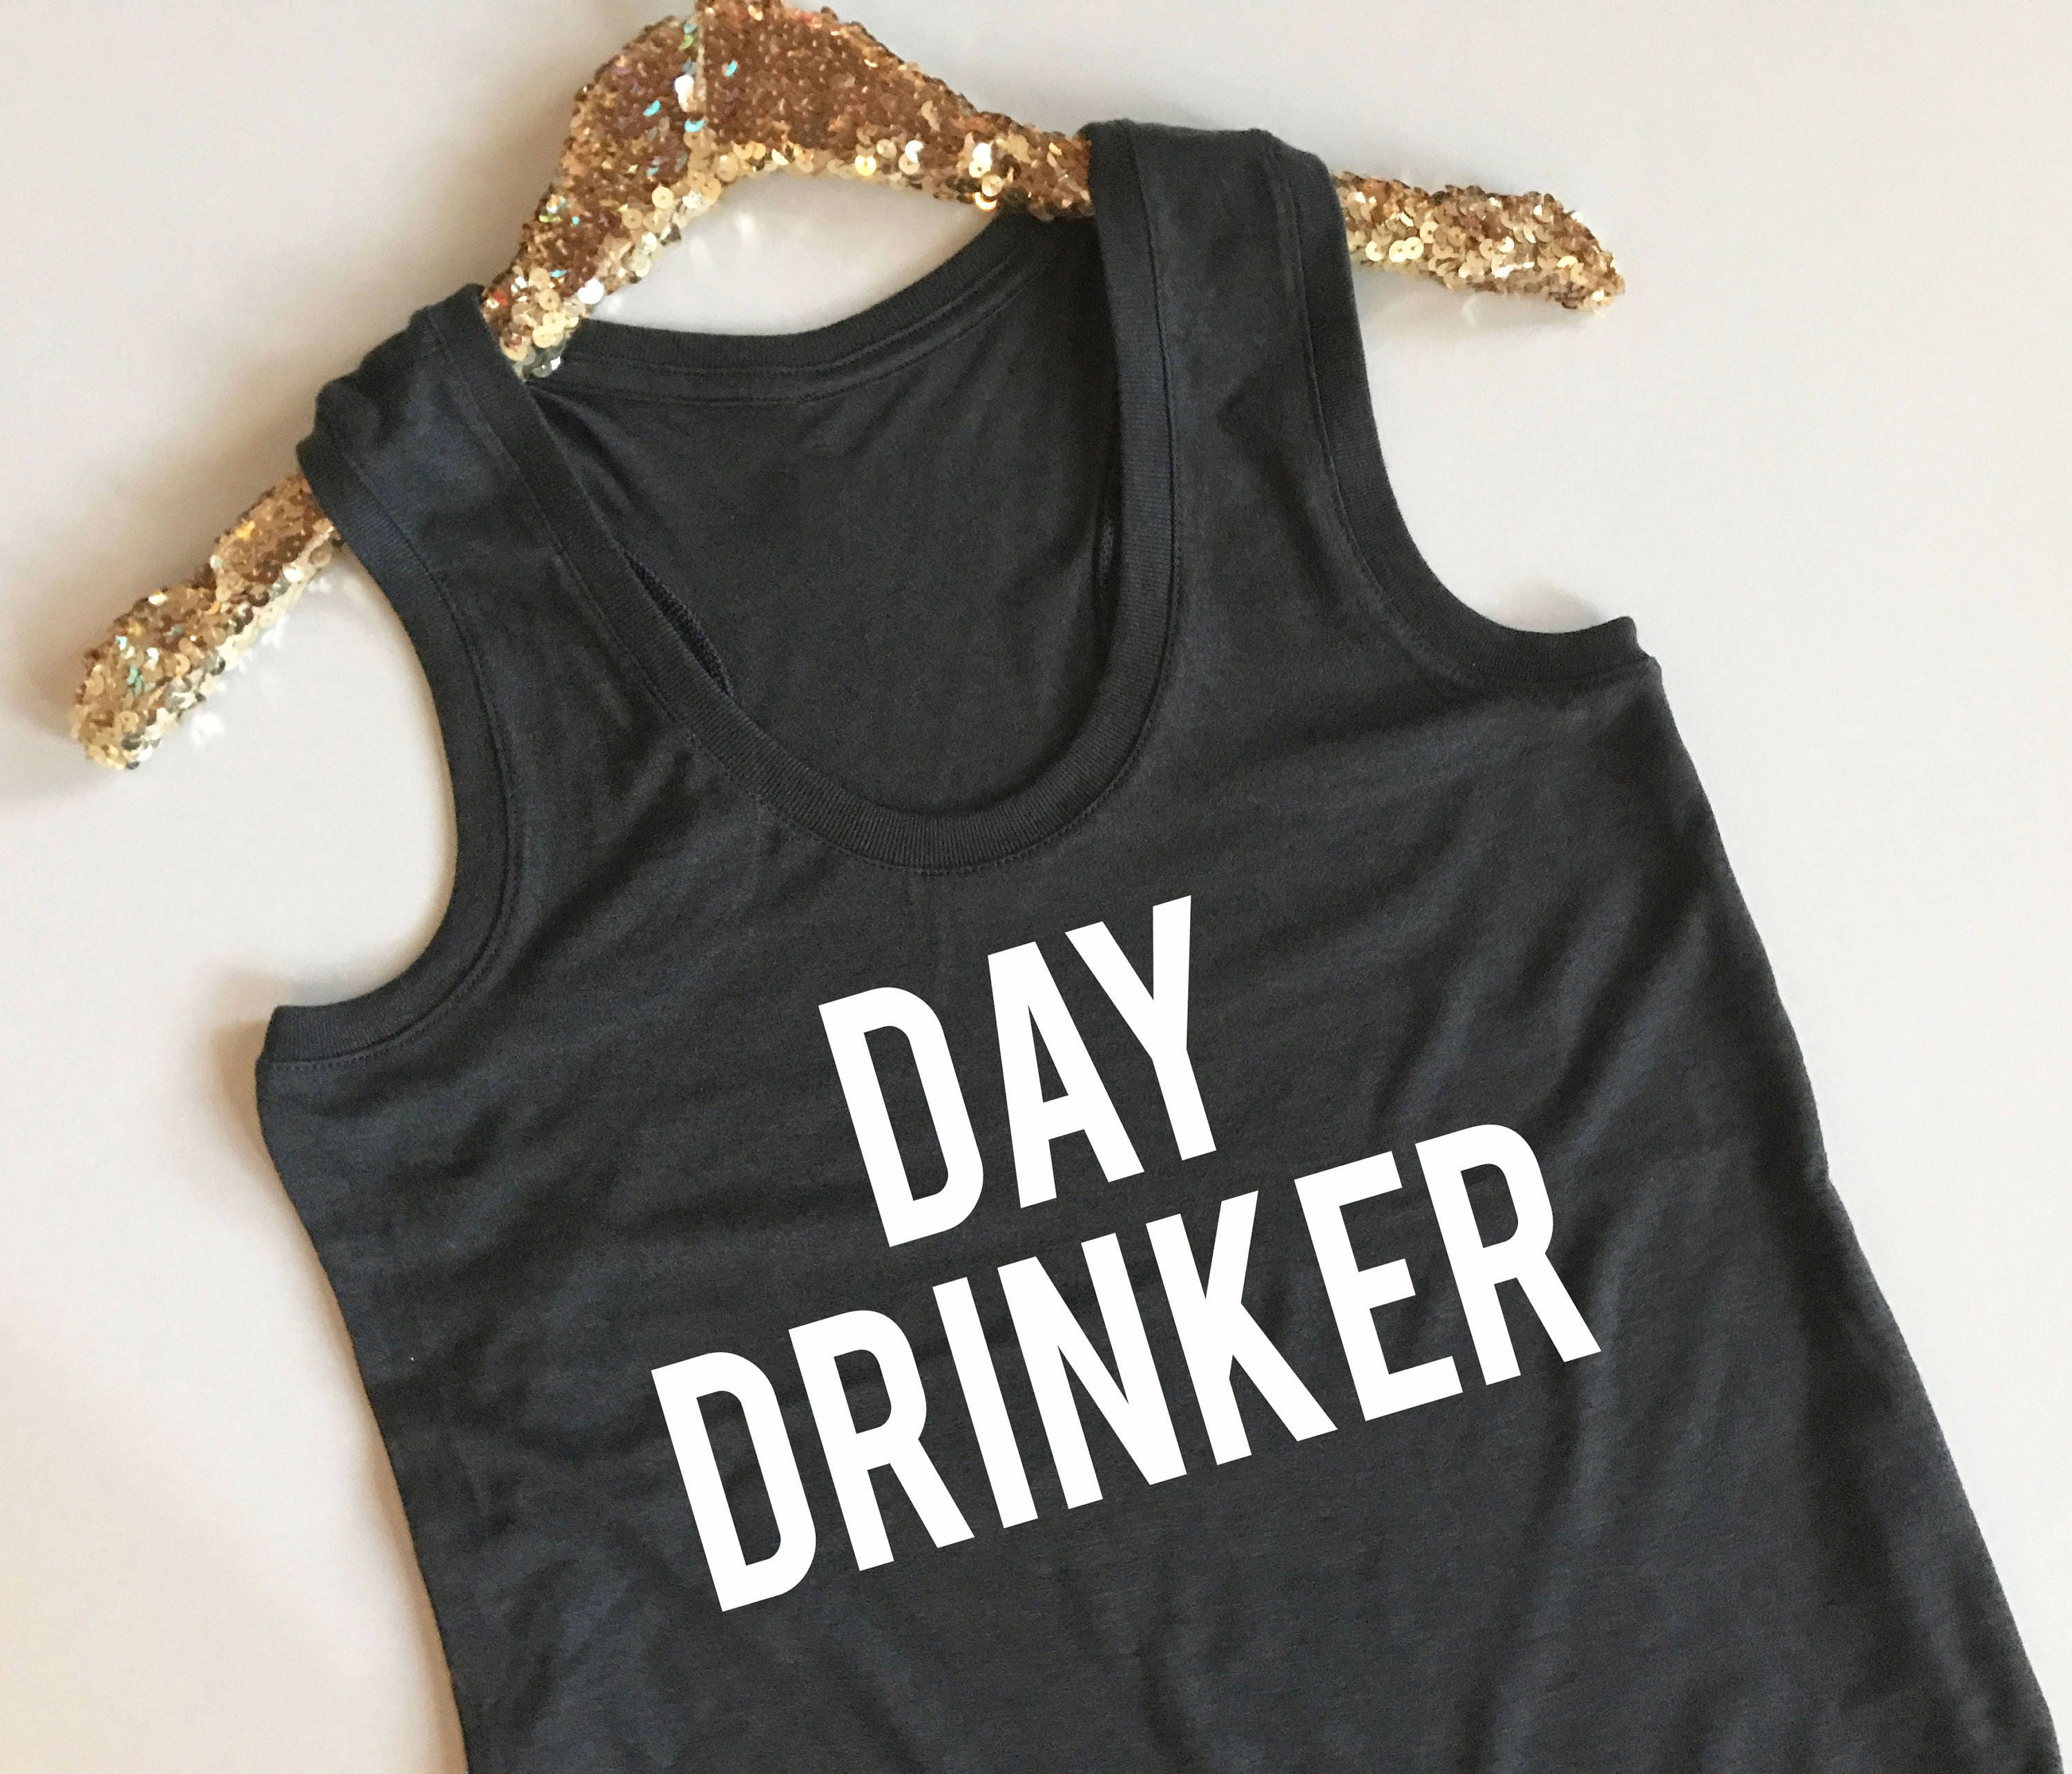 9bd8a652146db Day Drinker Tank Top - Day Drinking Tank Top - Day Drinker - Weekend Day  Drinking Tank - Tailgate ...